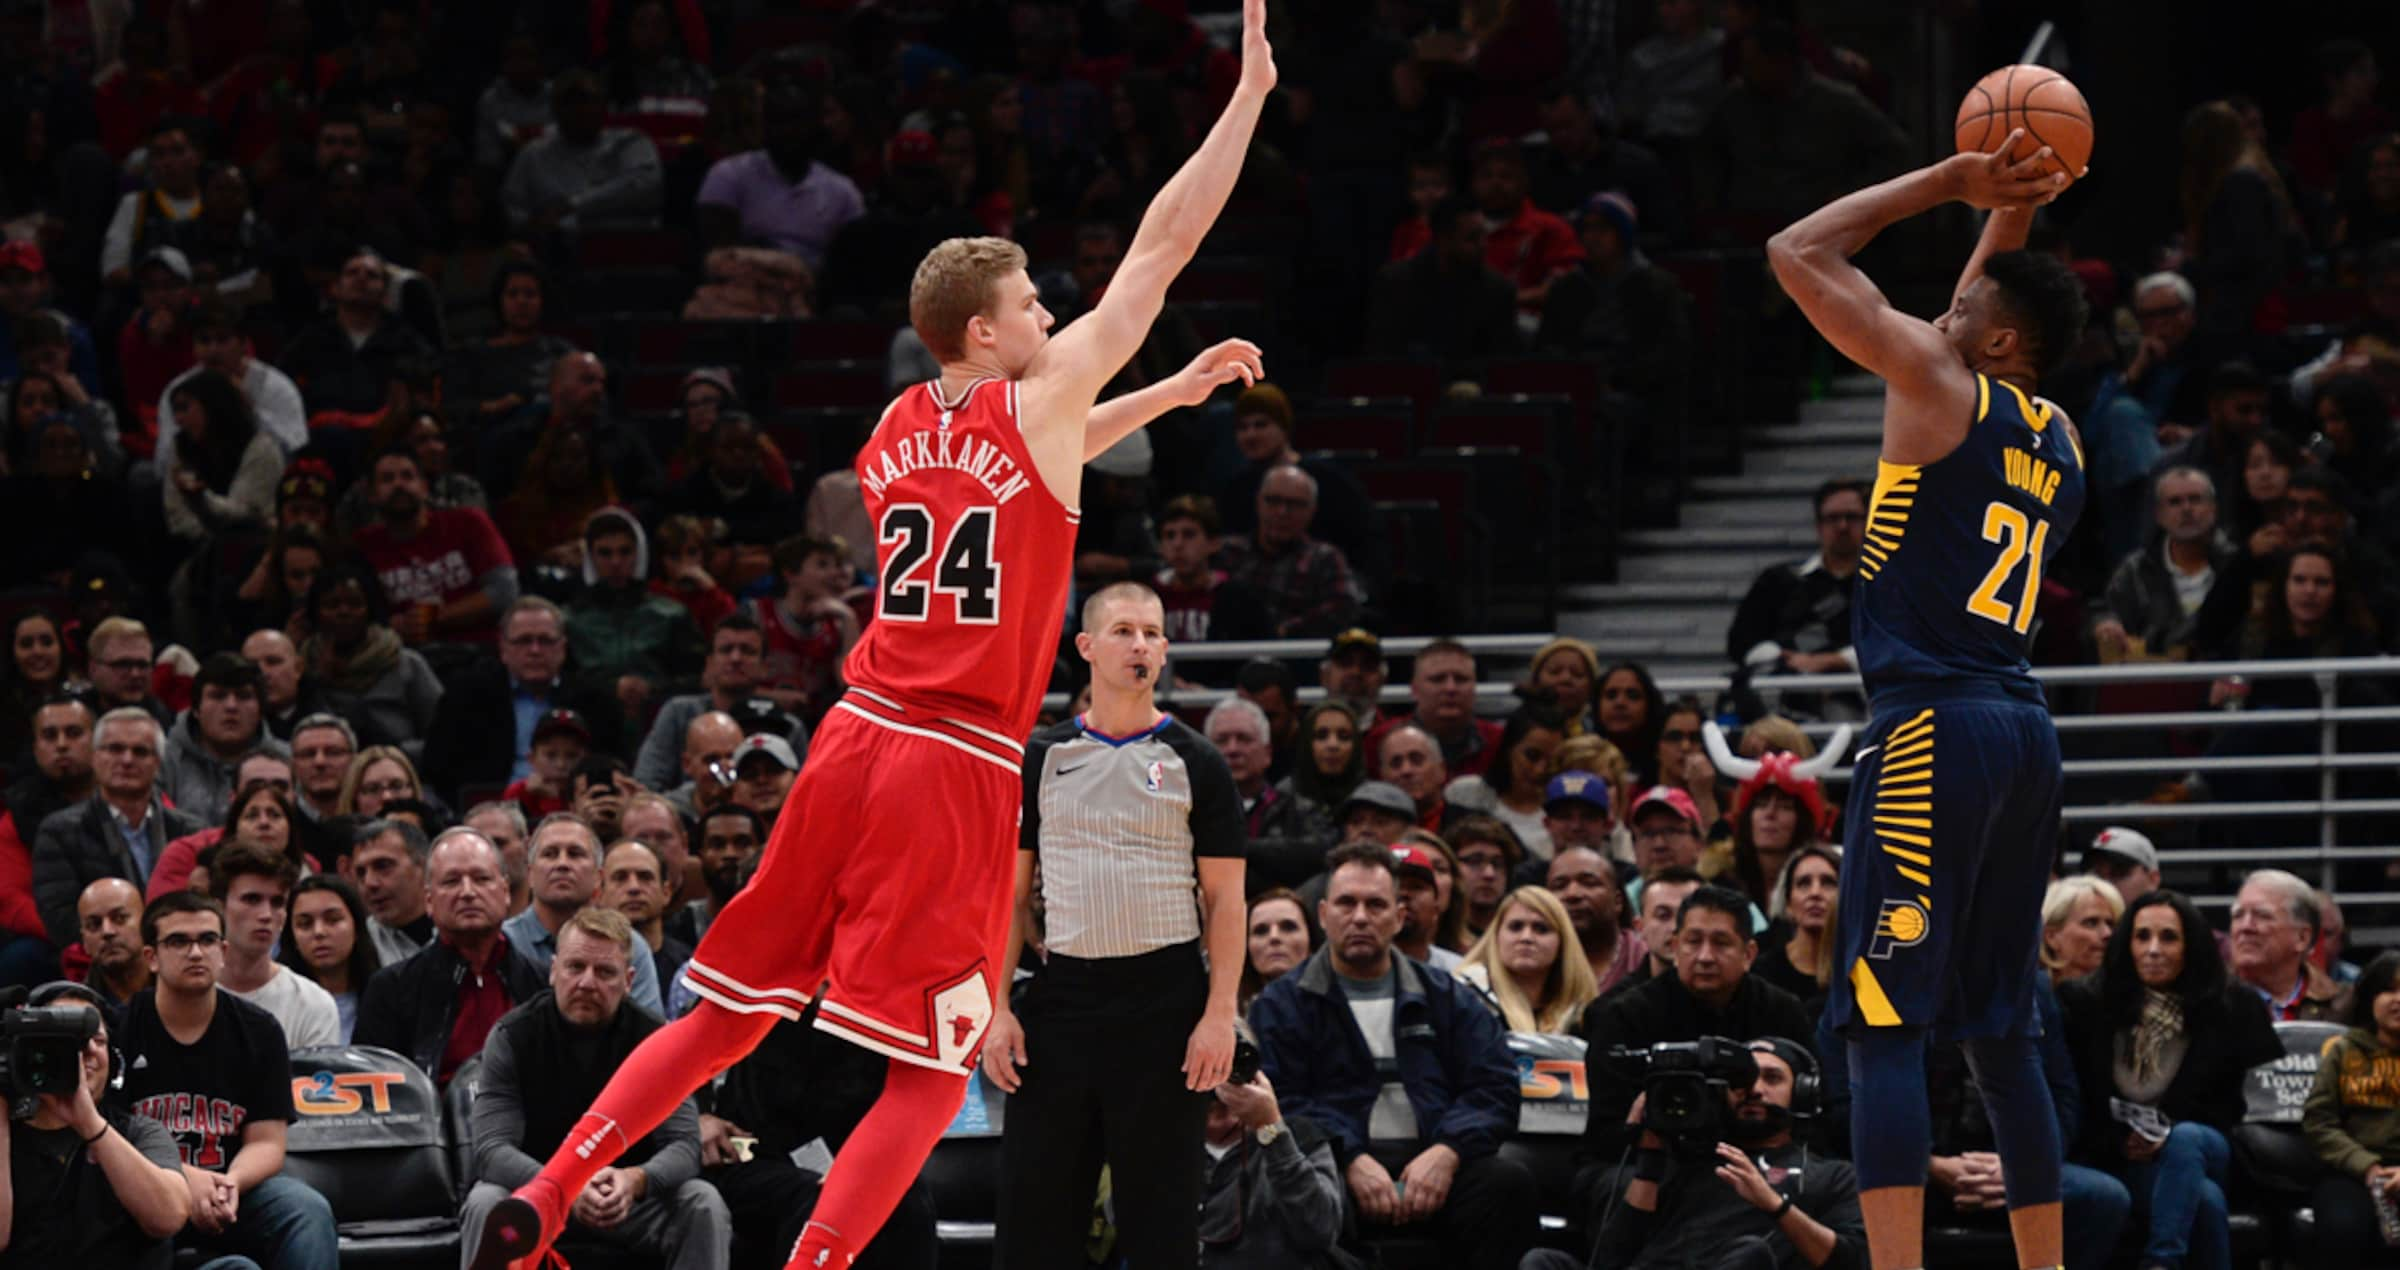 Lauri Markkanen defends against Thaddeus Young of the Indiana Pacers